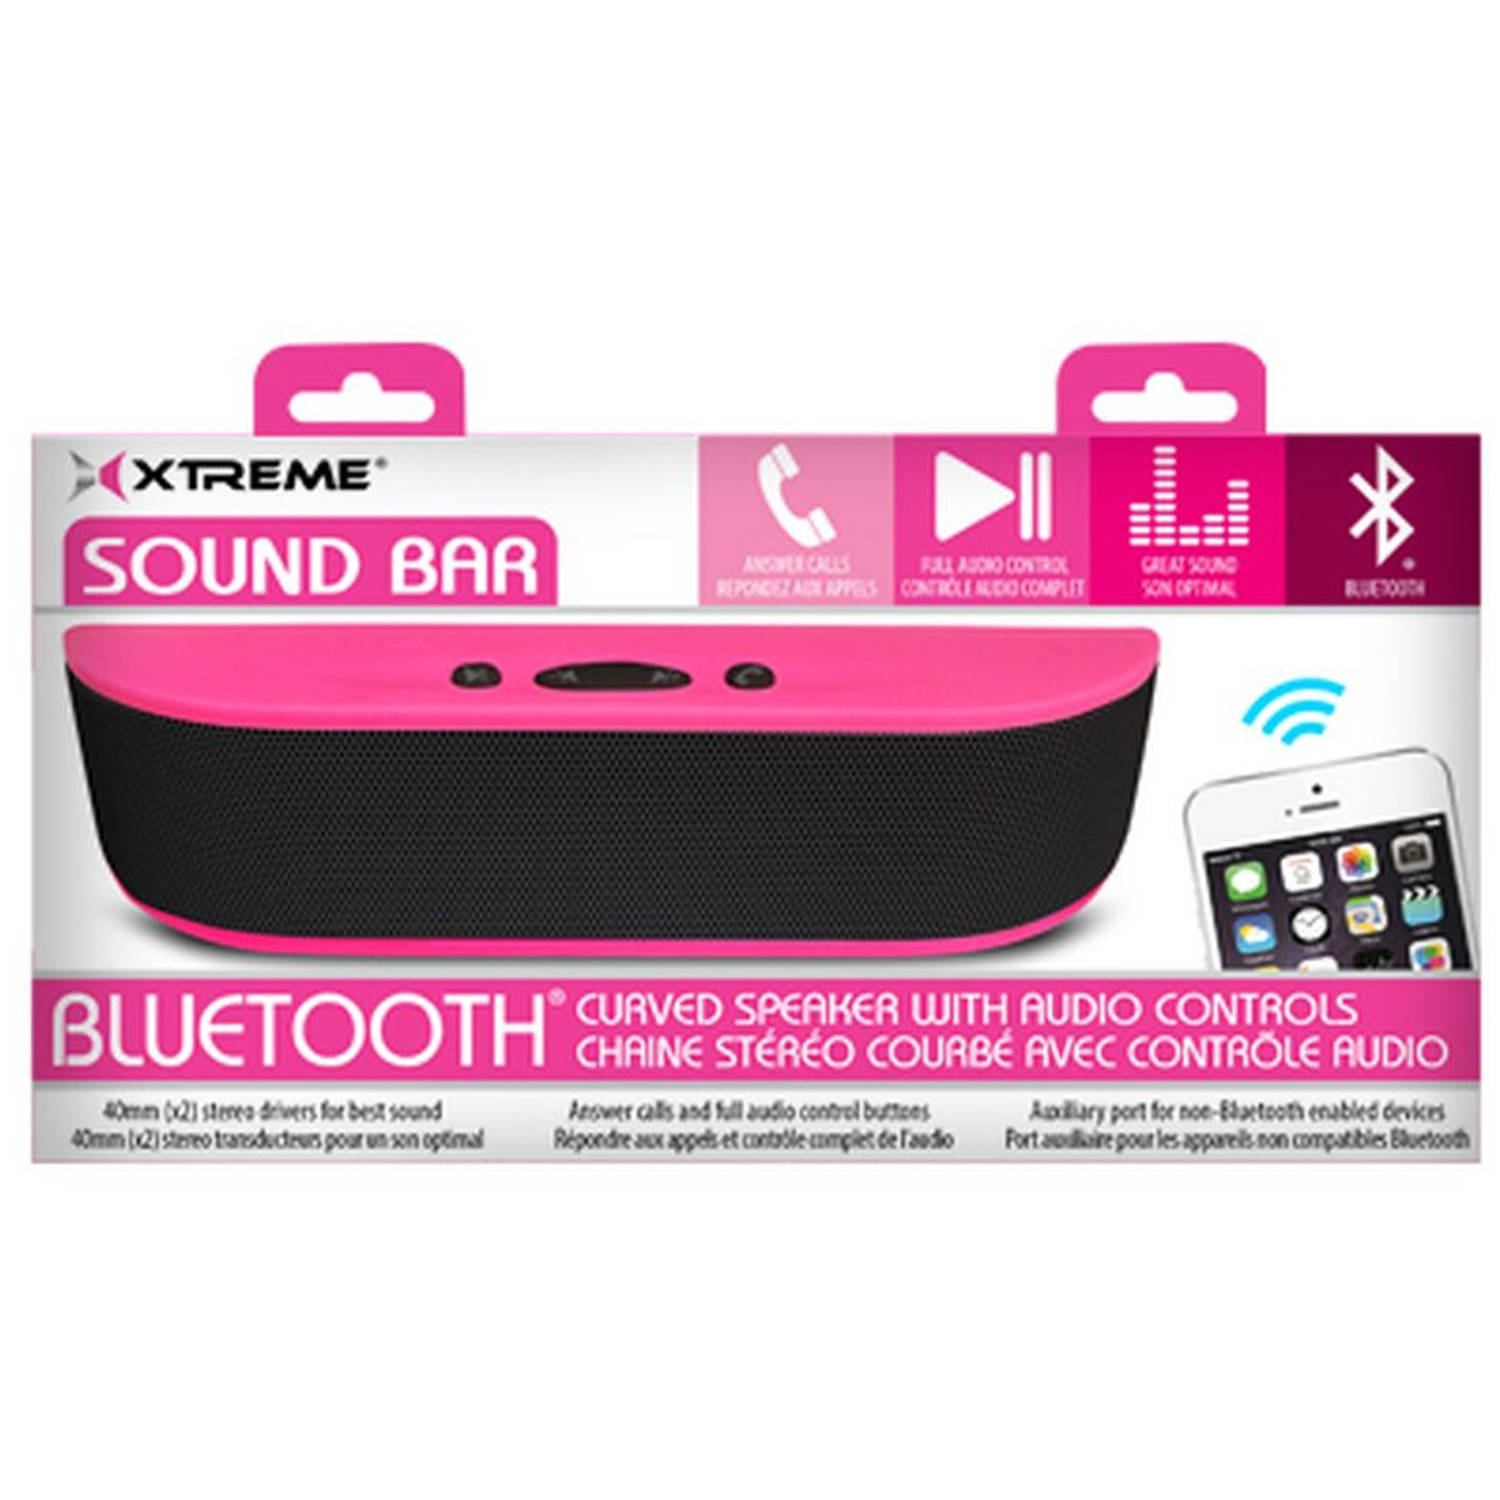 Soundbar Curved Bluetooth Speaker, Pink